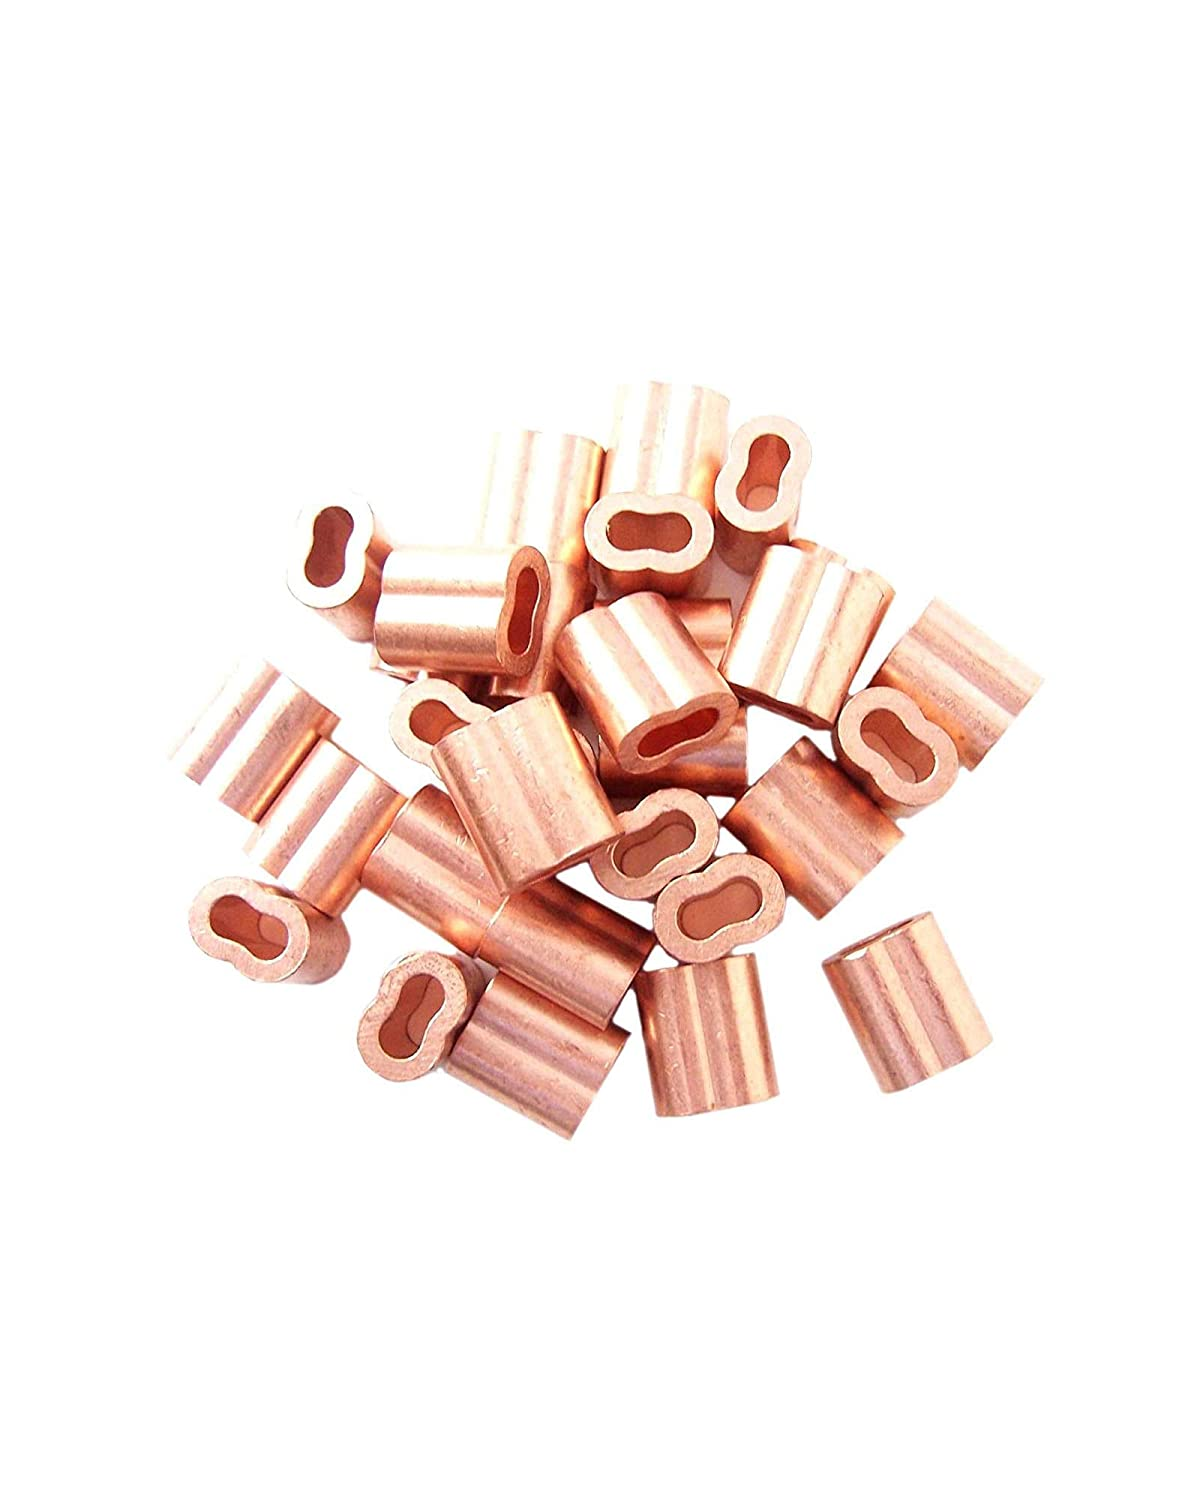 1//16/″ Copper Swage Sleeves 500 Cable Sleeves Cable Crimp Sleeves Crimping Loop Sleeve for 1//16 Diameter Wire Rope and Cable Wire Rope Crimp Sleeves Loop Sleeve Cable Crimp